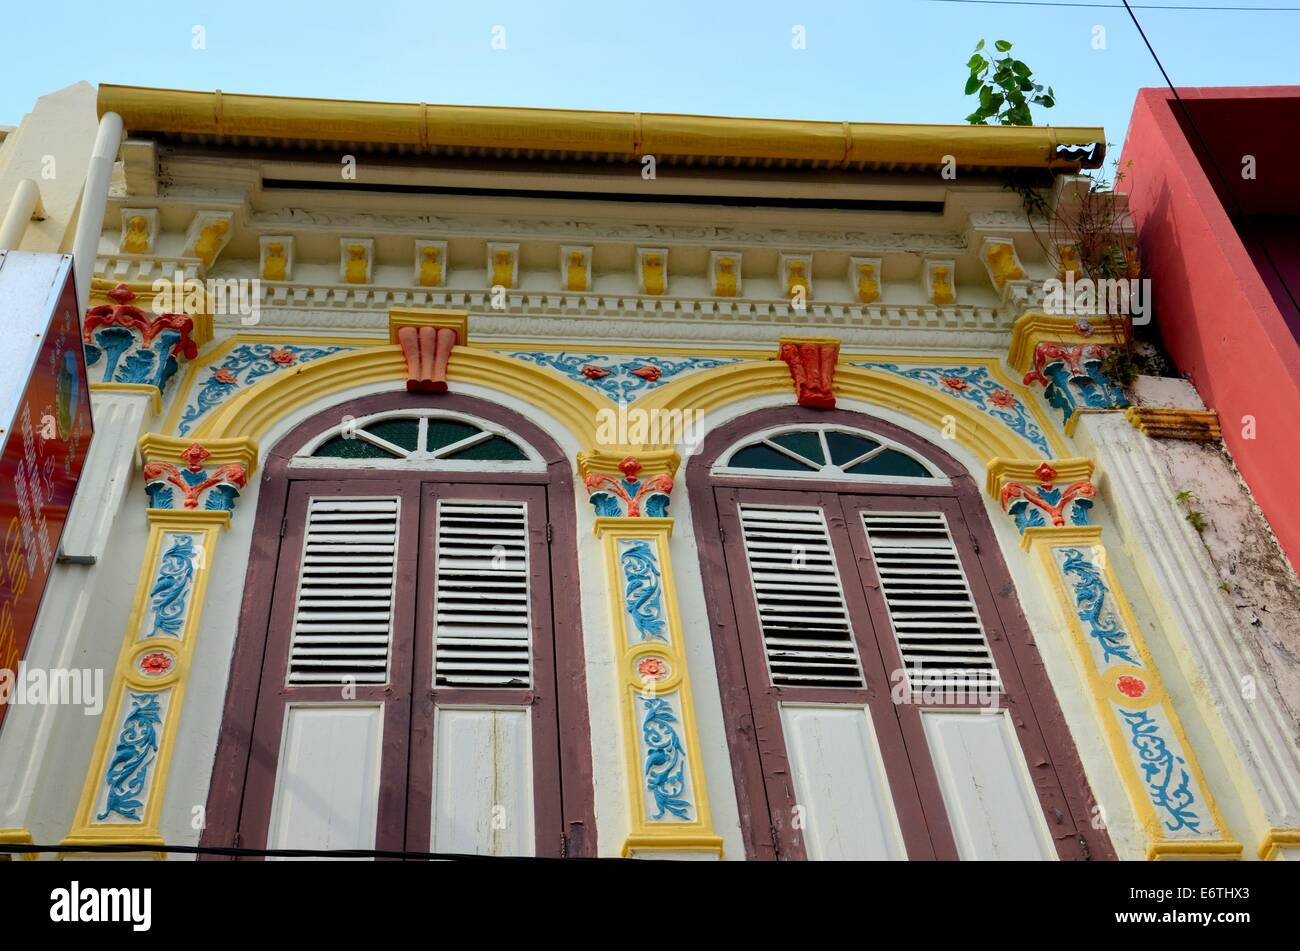 Ornate decorated shophouse windows shutters and wall in Malacca Malaysia - Stock Image